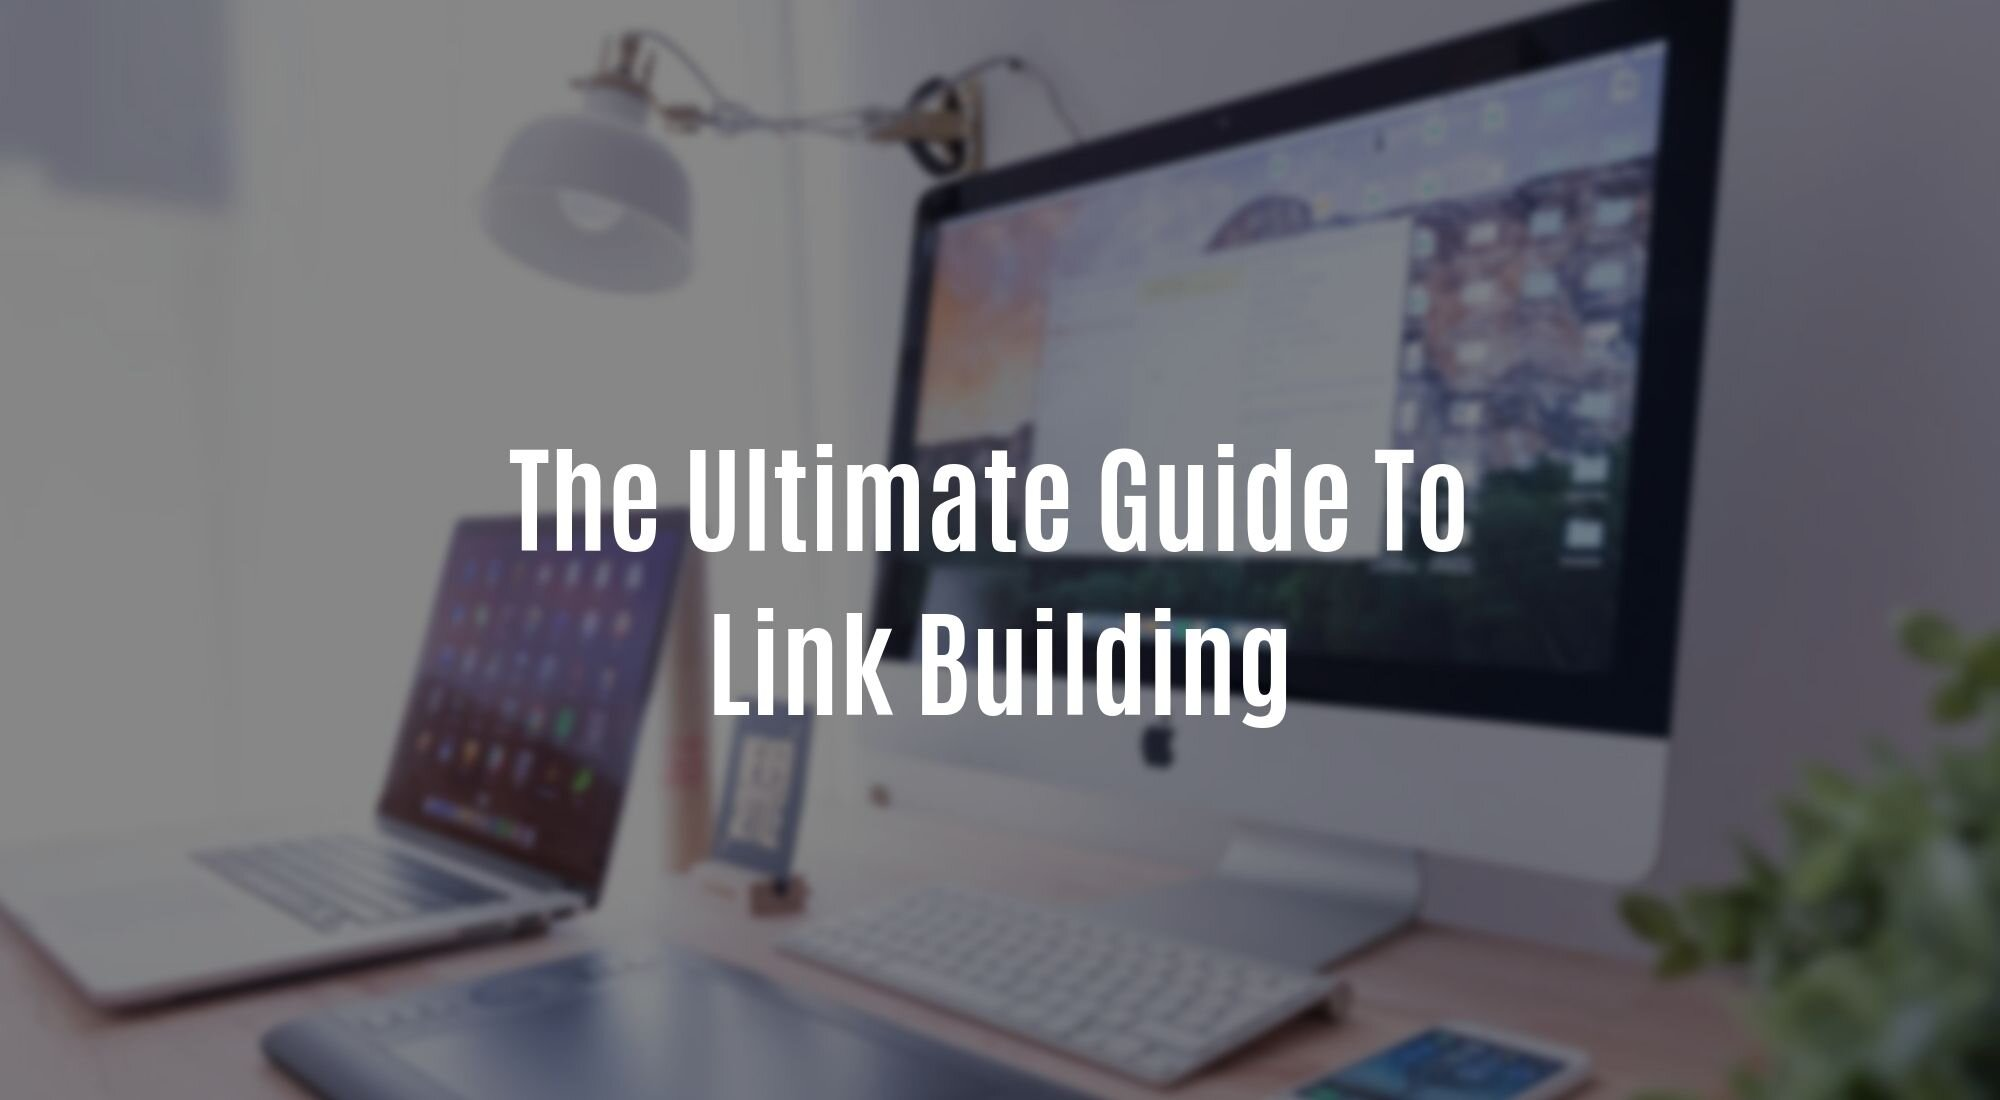 The Ultimate Guide To Link Building.jpg